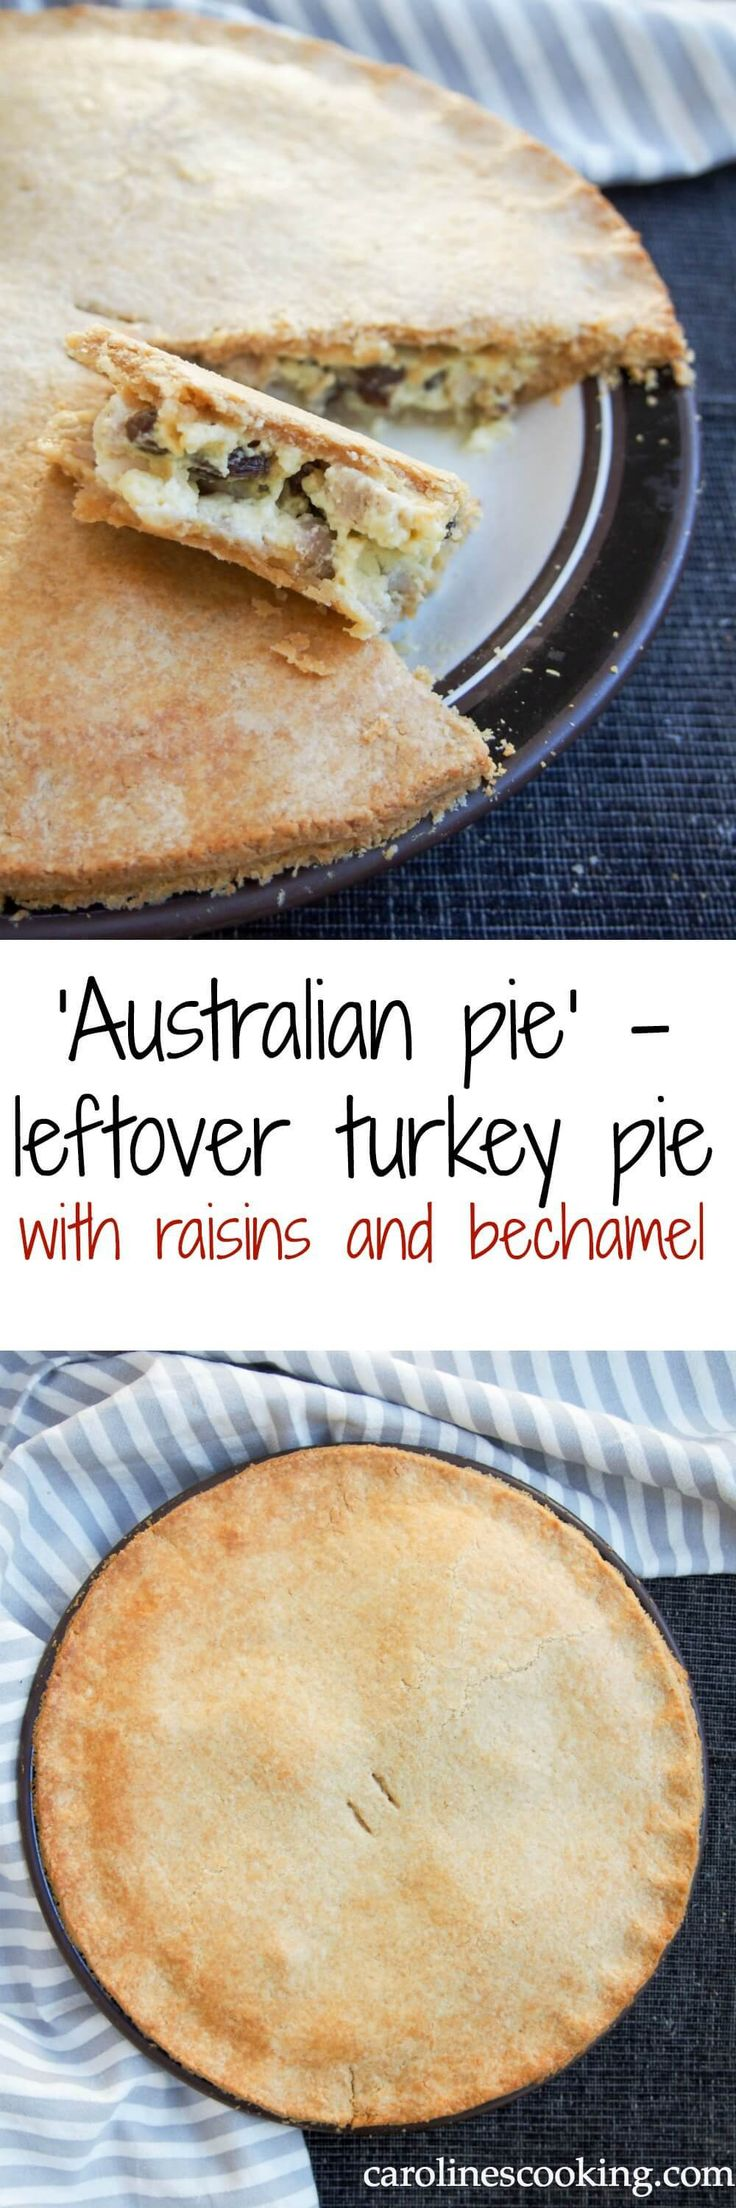 'Australian pie' - leftover turkey pie with raisins and bechamel. Give leftover turkey/chicken a tasty new lease of life with this leftover turkey pie with raisins and bechamel. Easy to make, so comforting & delicious. #SundaySupper